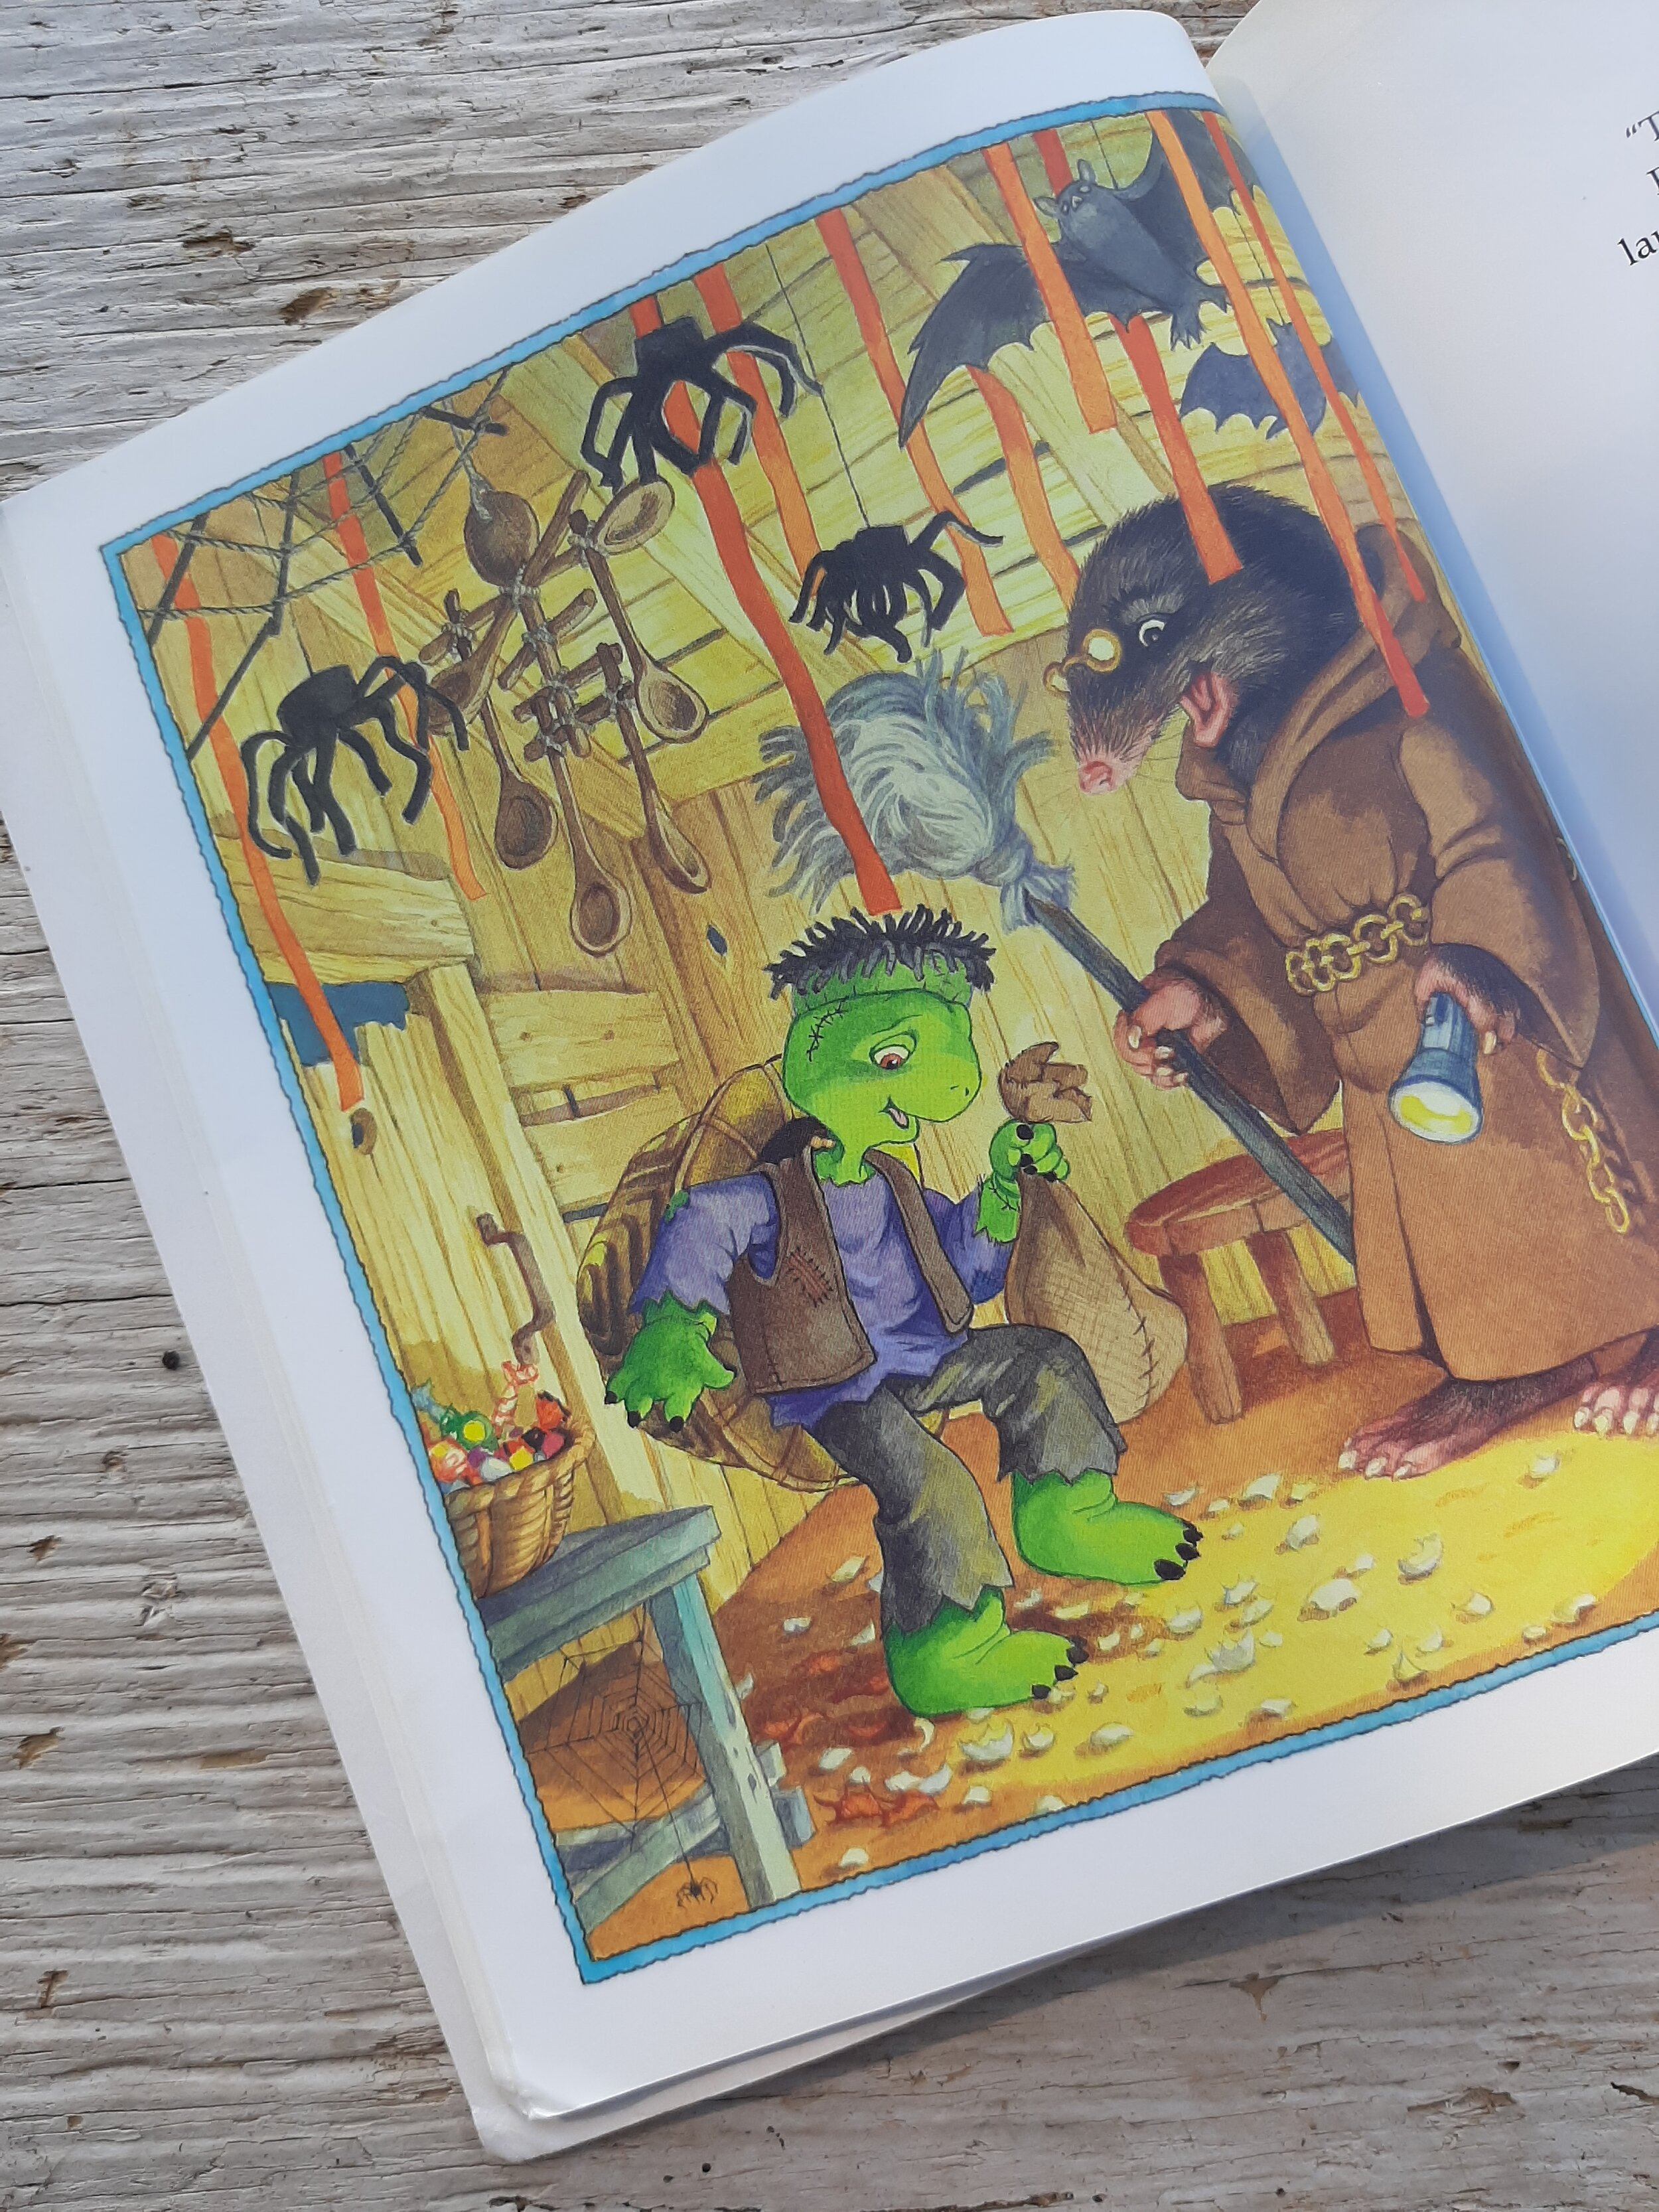 Franklin's Halloween - by Paulette BourgeoisIllustrated by Brenda Clark